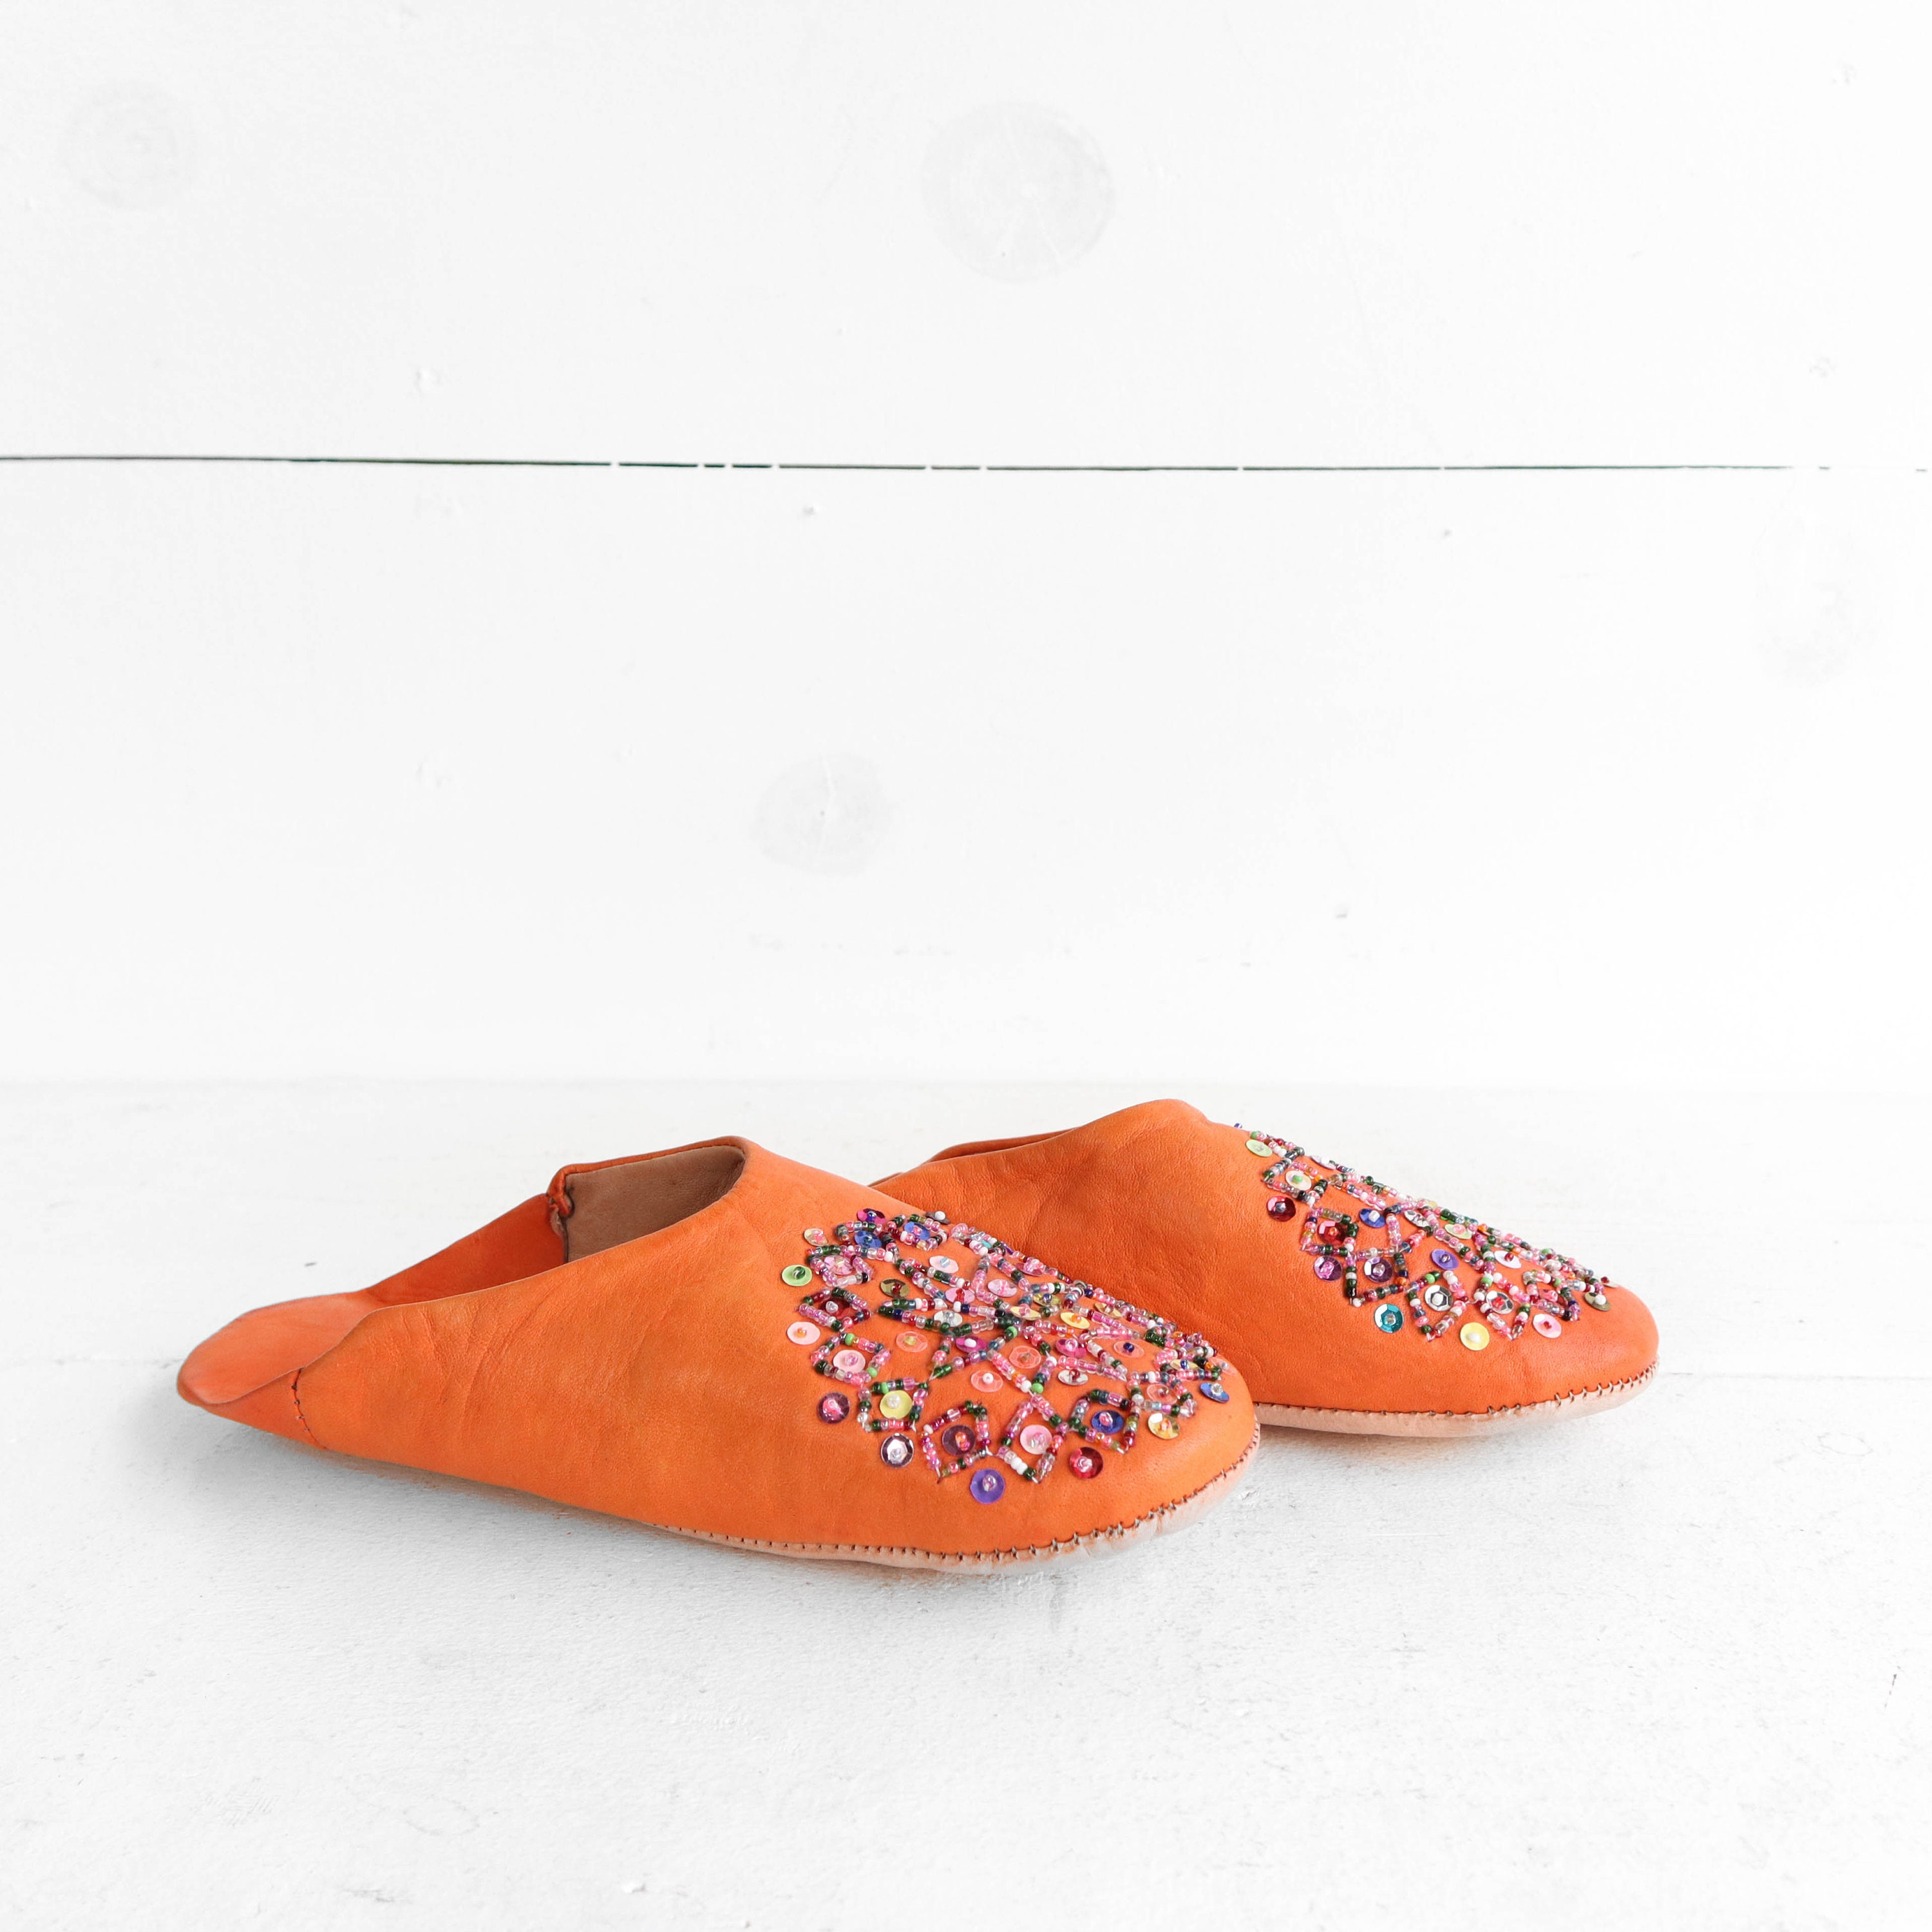 1600b0d7ad586 Beaded Orange Leather Babouche Slippers size 9